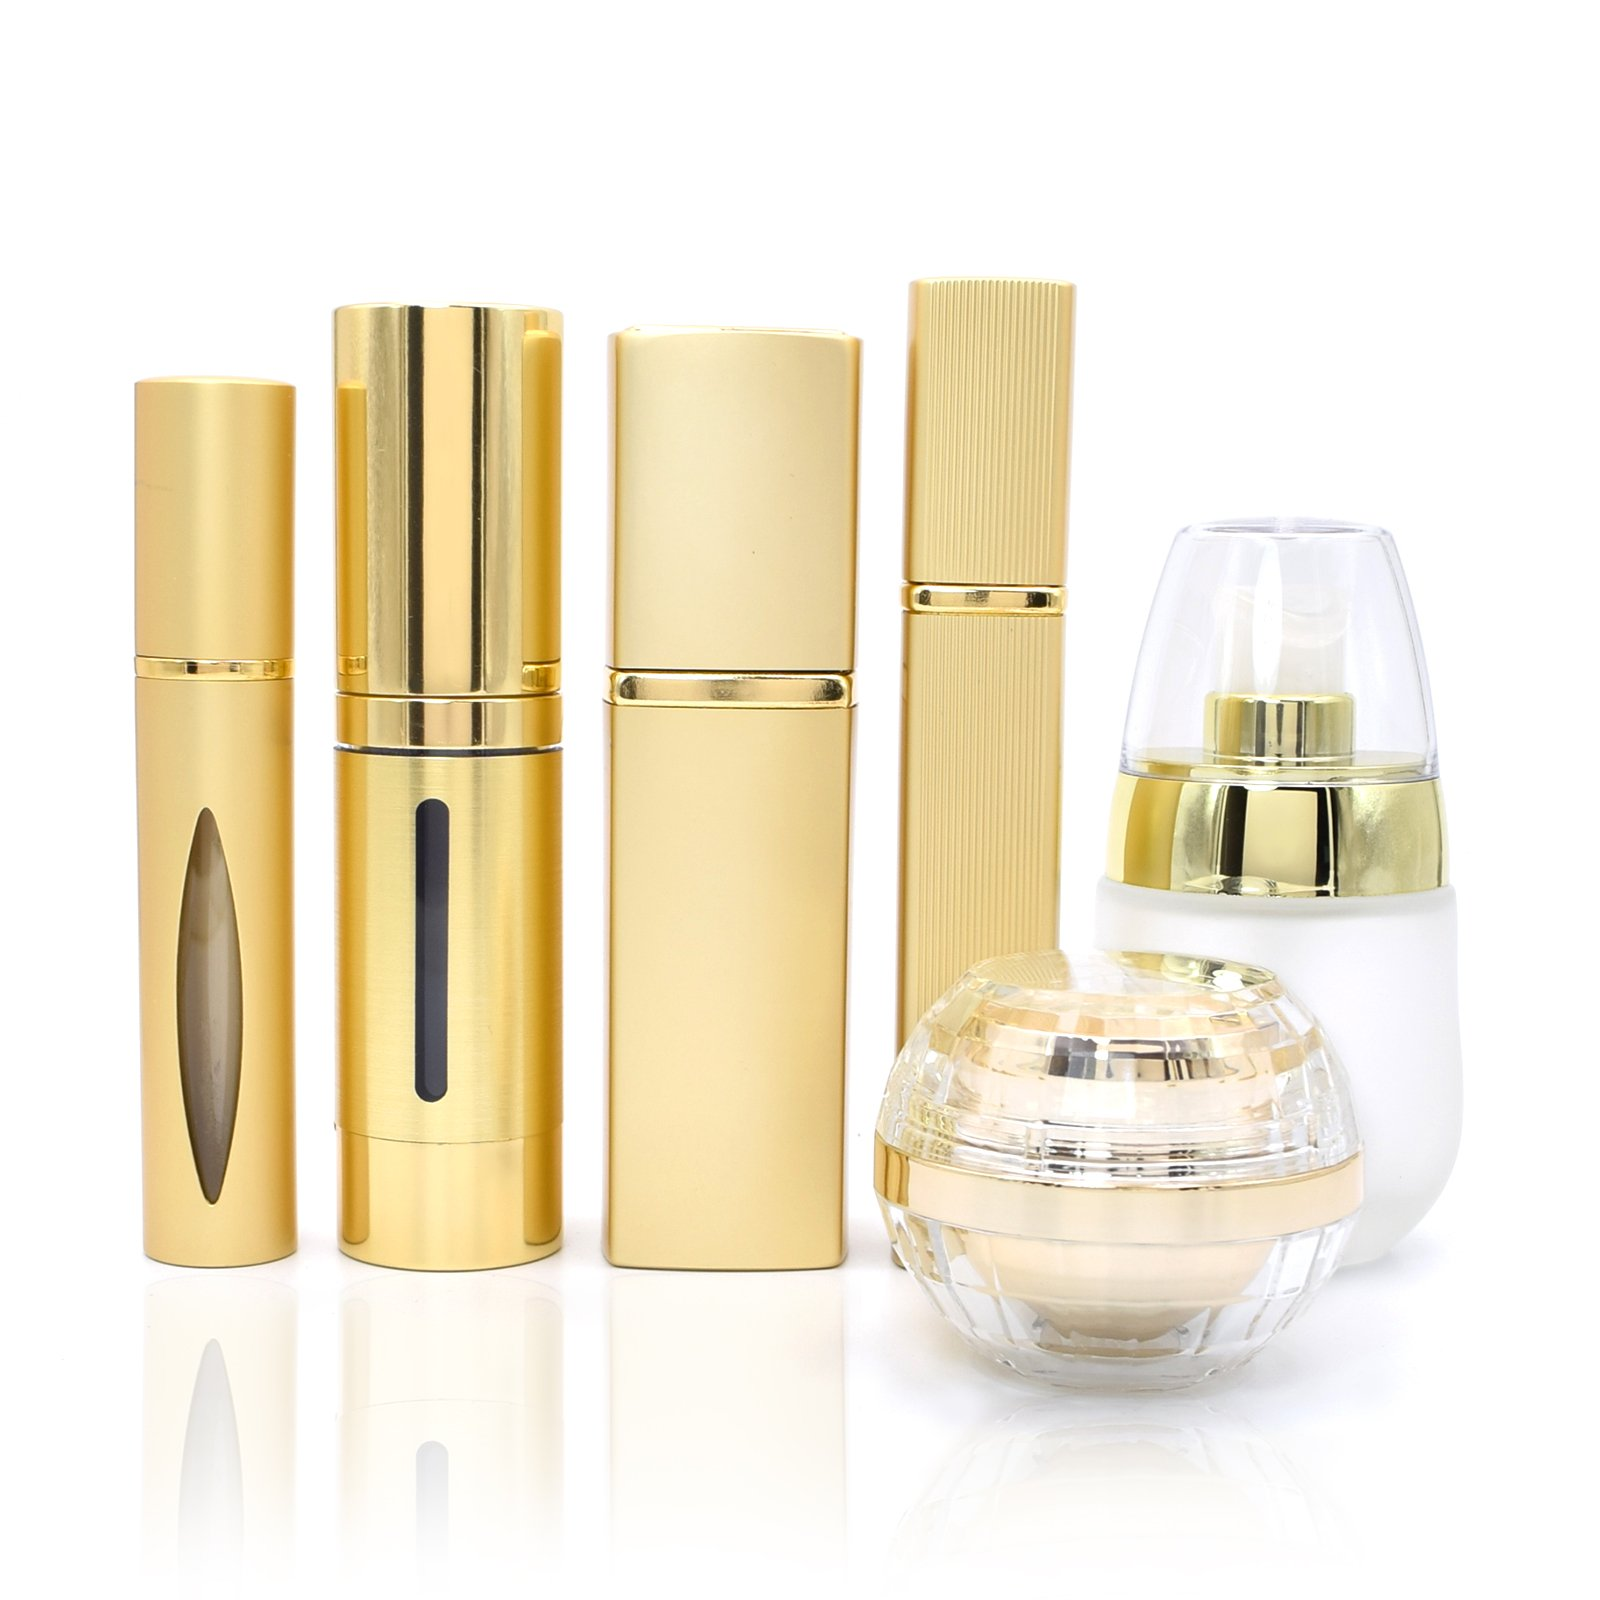 (NEW ARRIVAL) Luxury Metallic Travel Refillable Makeup Empty Bottles Set, Airless Vacuum Pump | Spray Atomizer Glass Bottle Roller-on Perfume Bottle Cosmetic Jar Container (Gold)